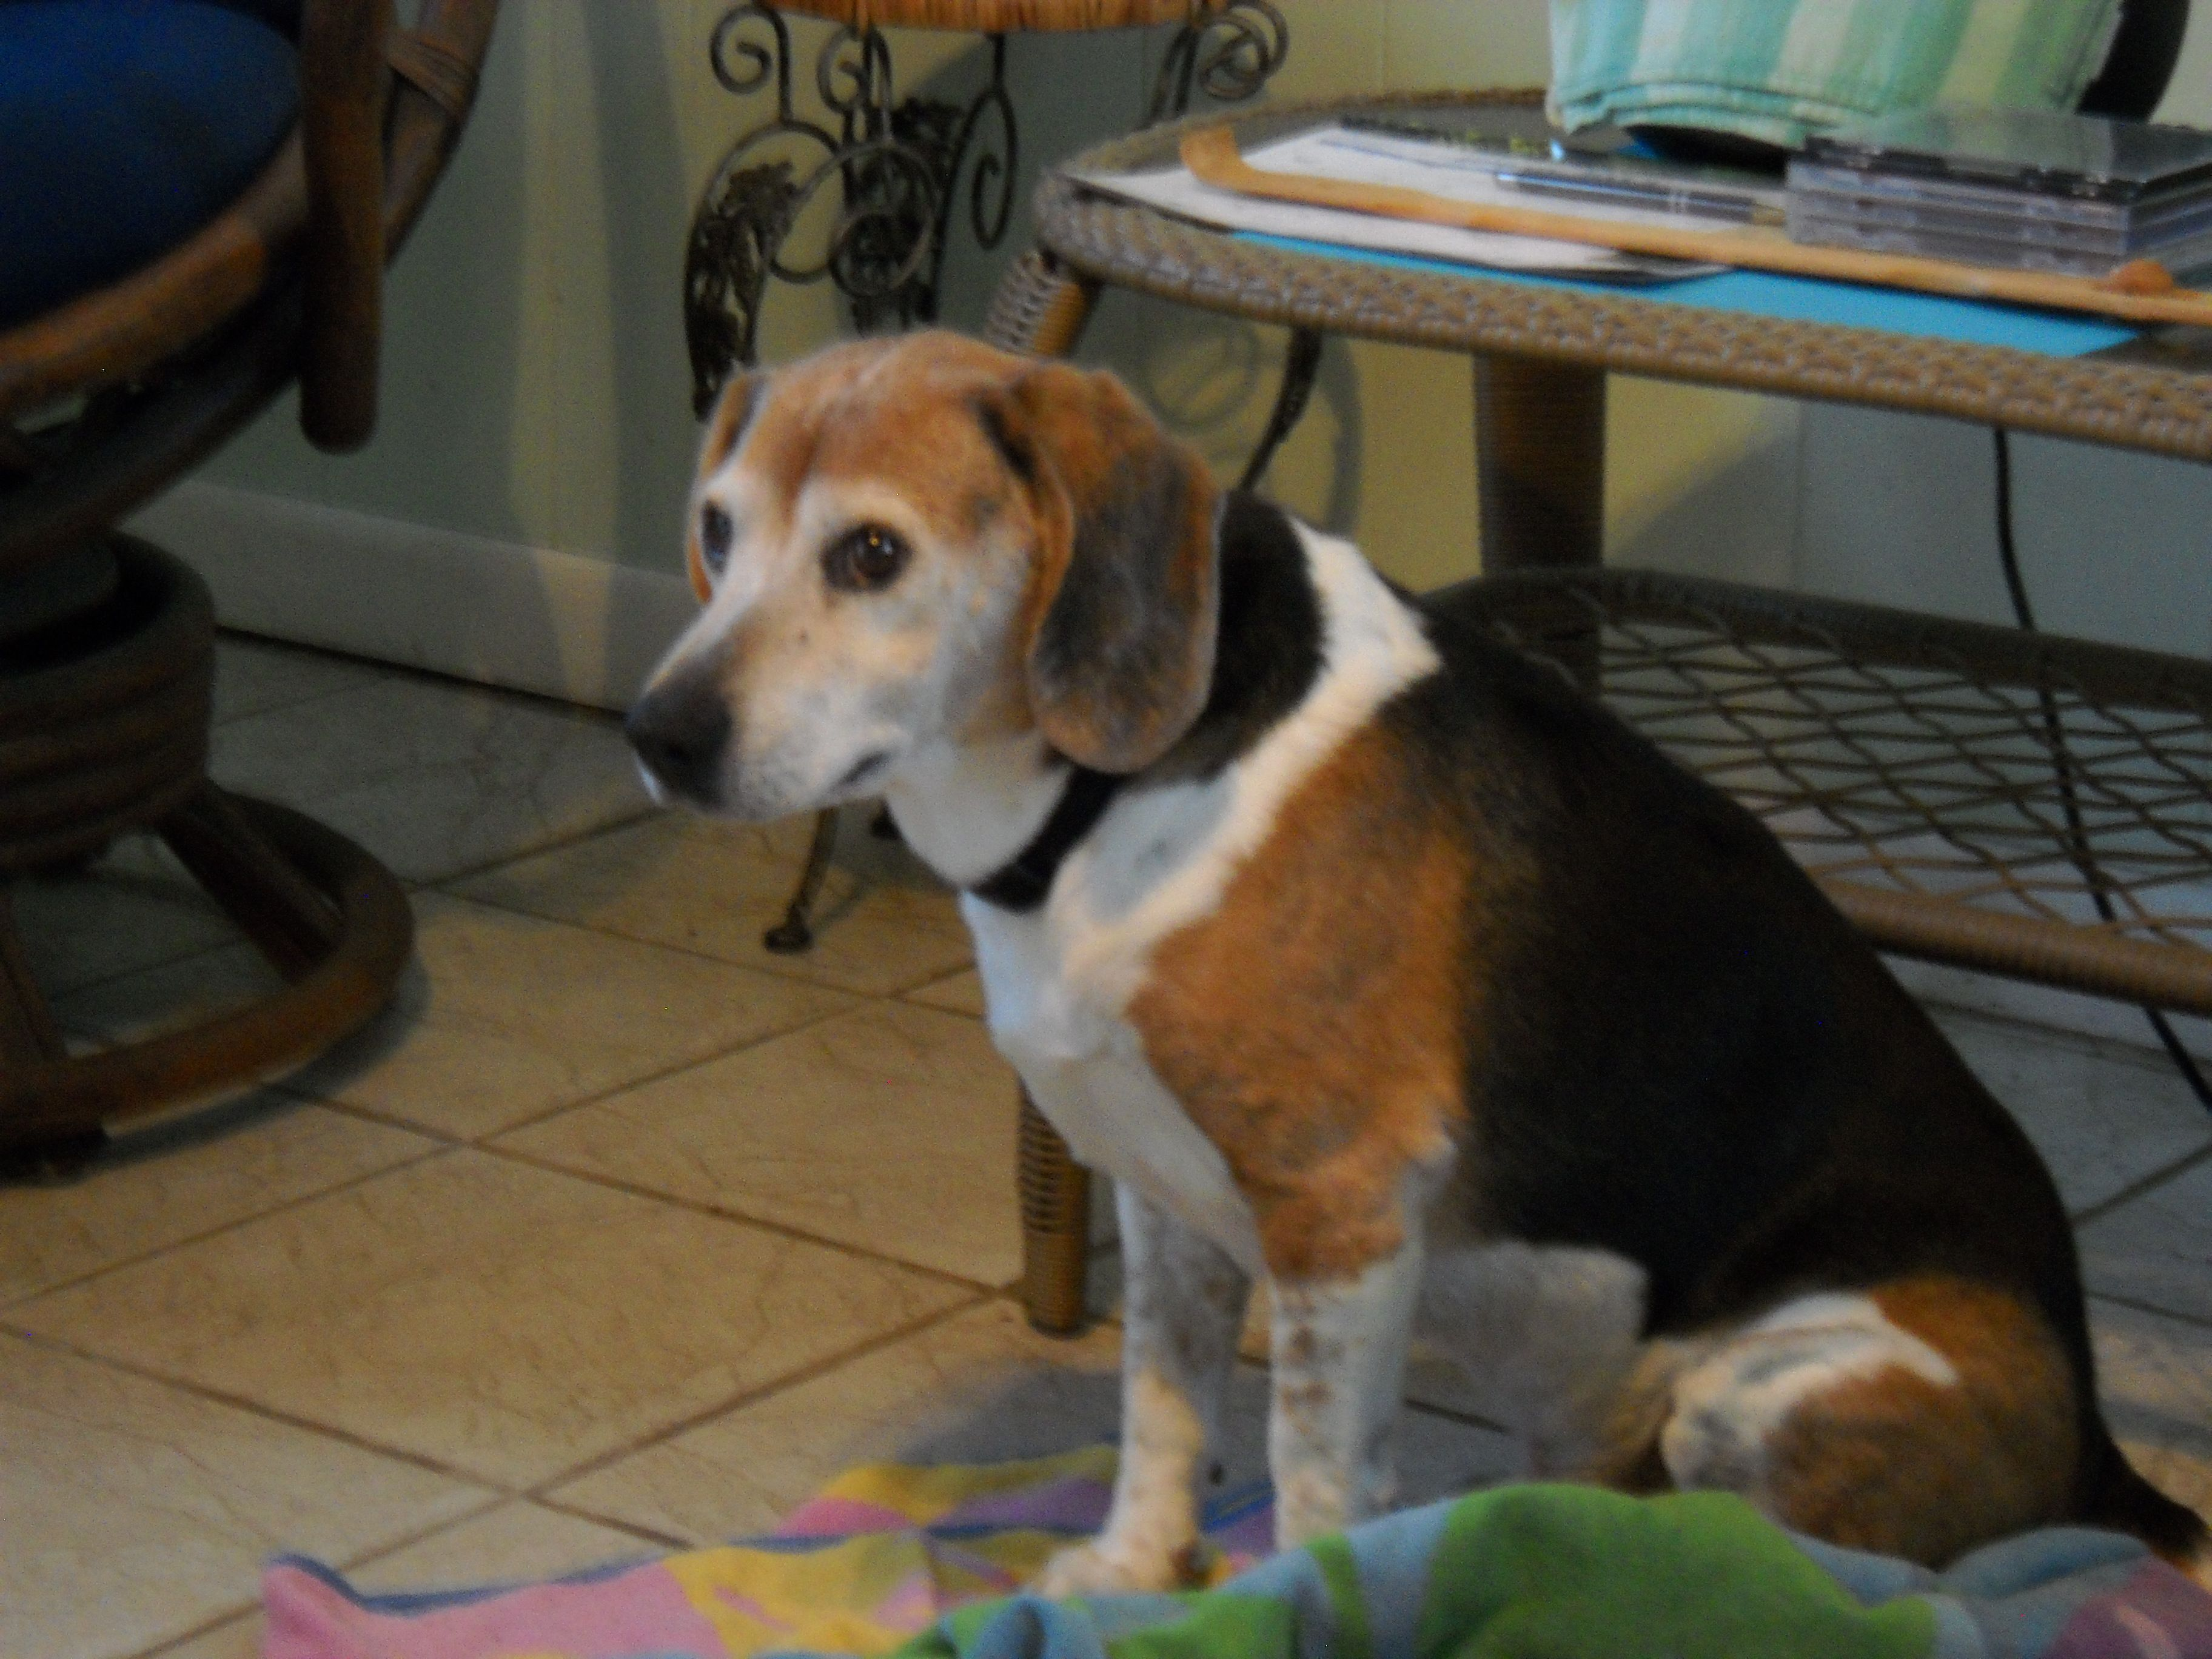 Beagle dog for Adoption in Tampa, FL. ADN450549 on